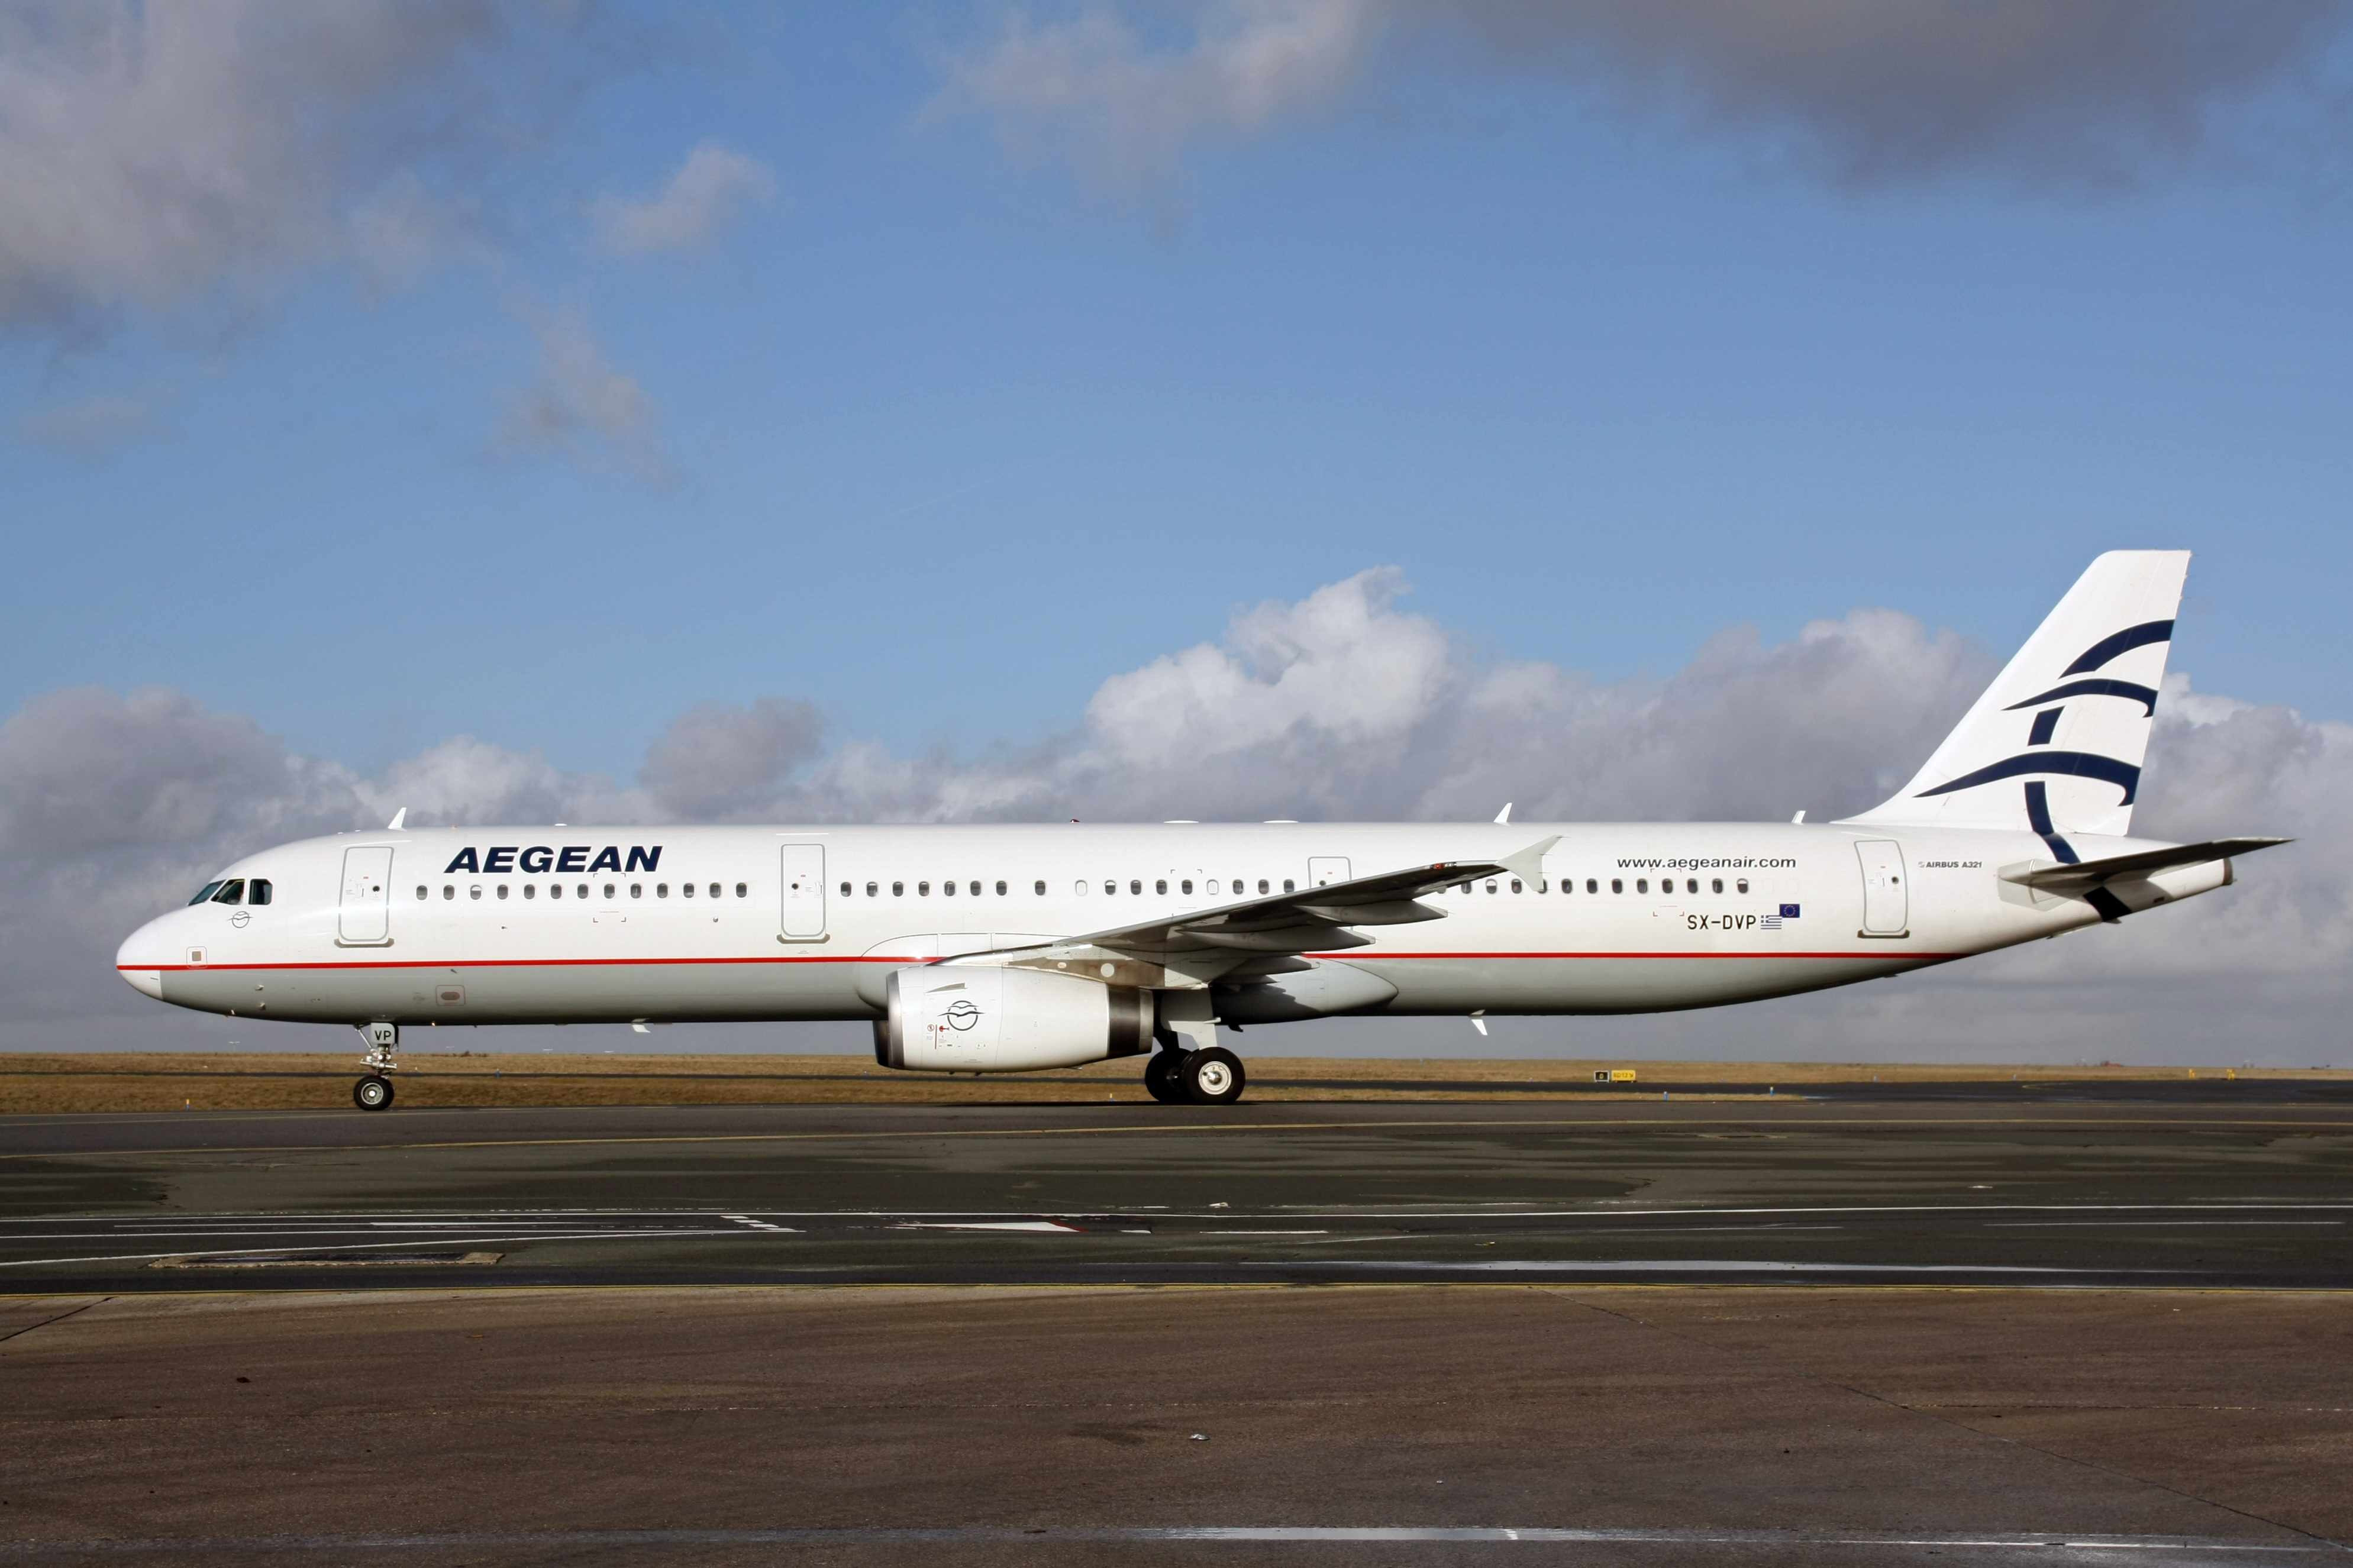 Aegean Airlines S.A. (Greek: Αεροπορία Αιγαίου Ανώνυμη Εταιρεία, Aeroporía Aigaíou Anónimi Etairía pronounced [aeropoˈria eˈʝeu]; LSE: 0OHY) is the largest Greek airline by total number of passengers carried, by number of destinations served and by fleet size.A Star Alliance member since June , it operates scheduled and charter services from Athens and.